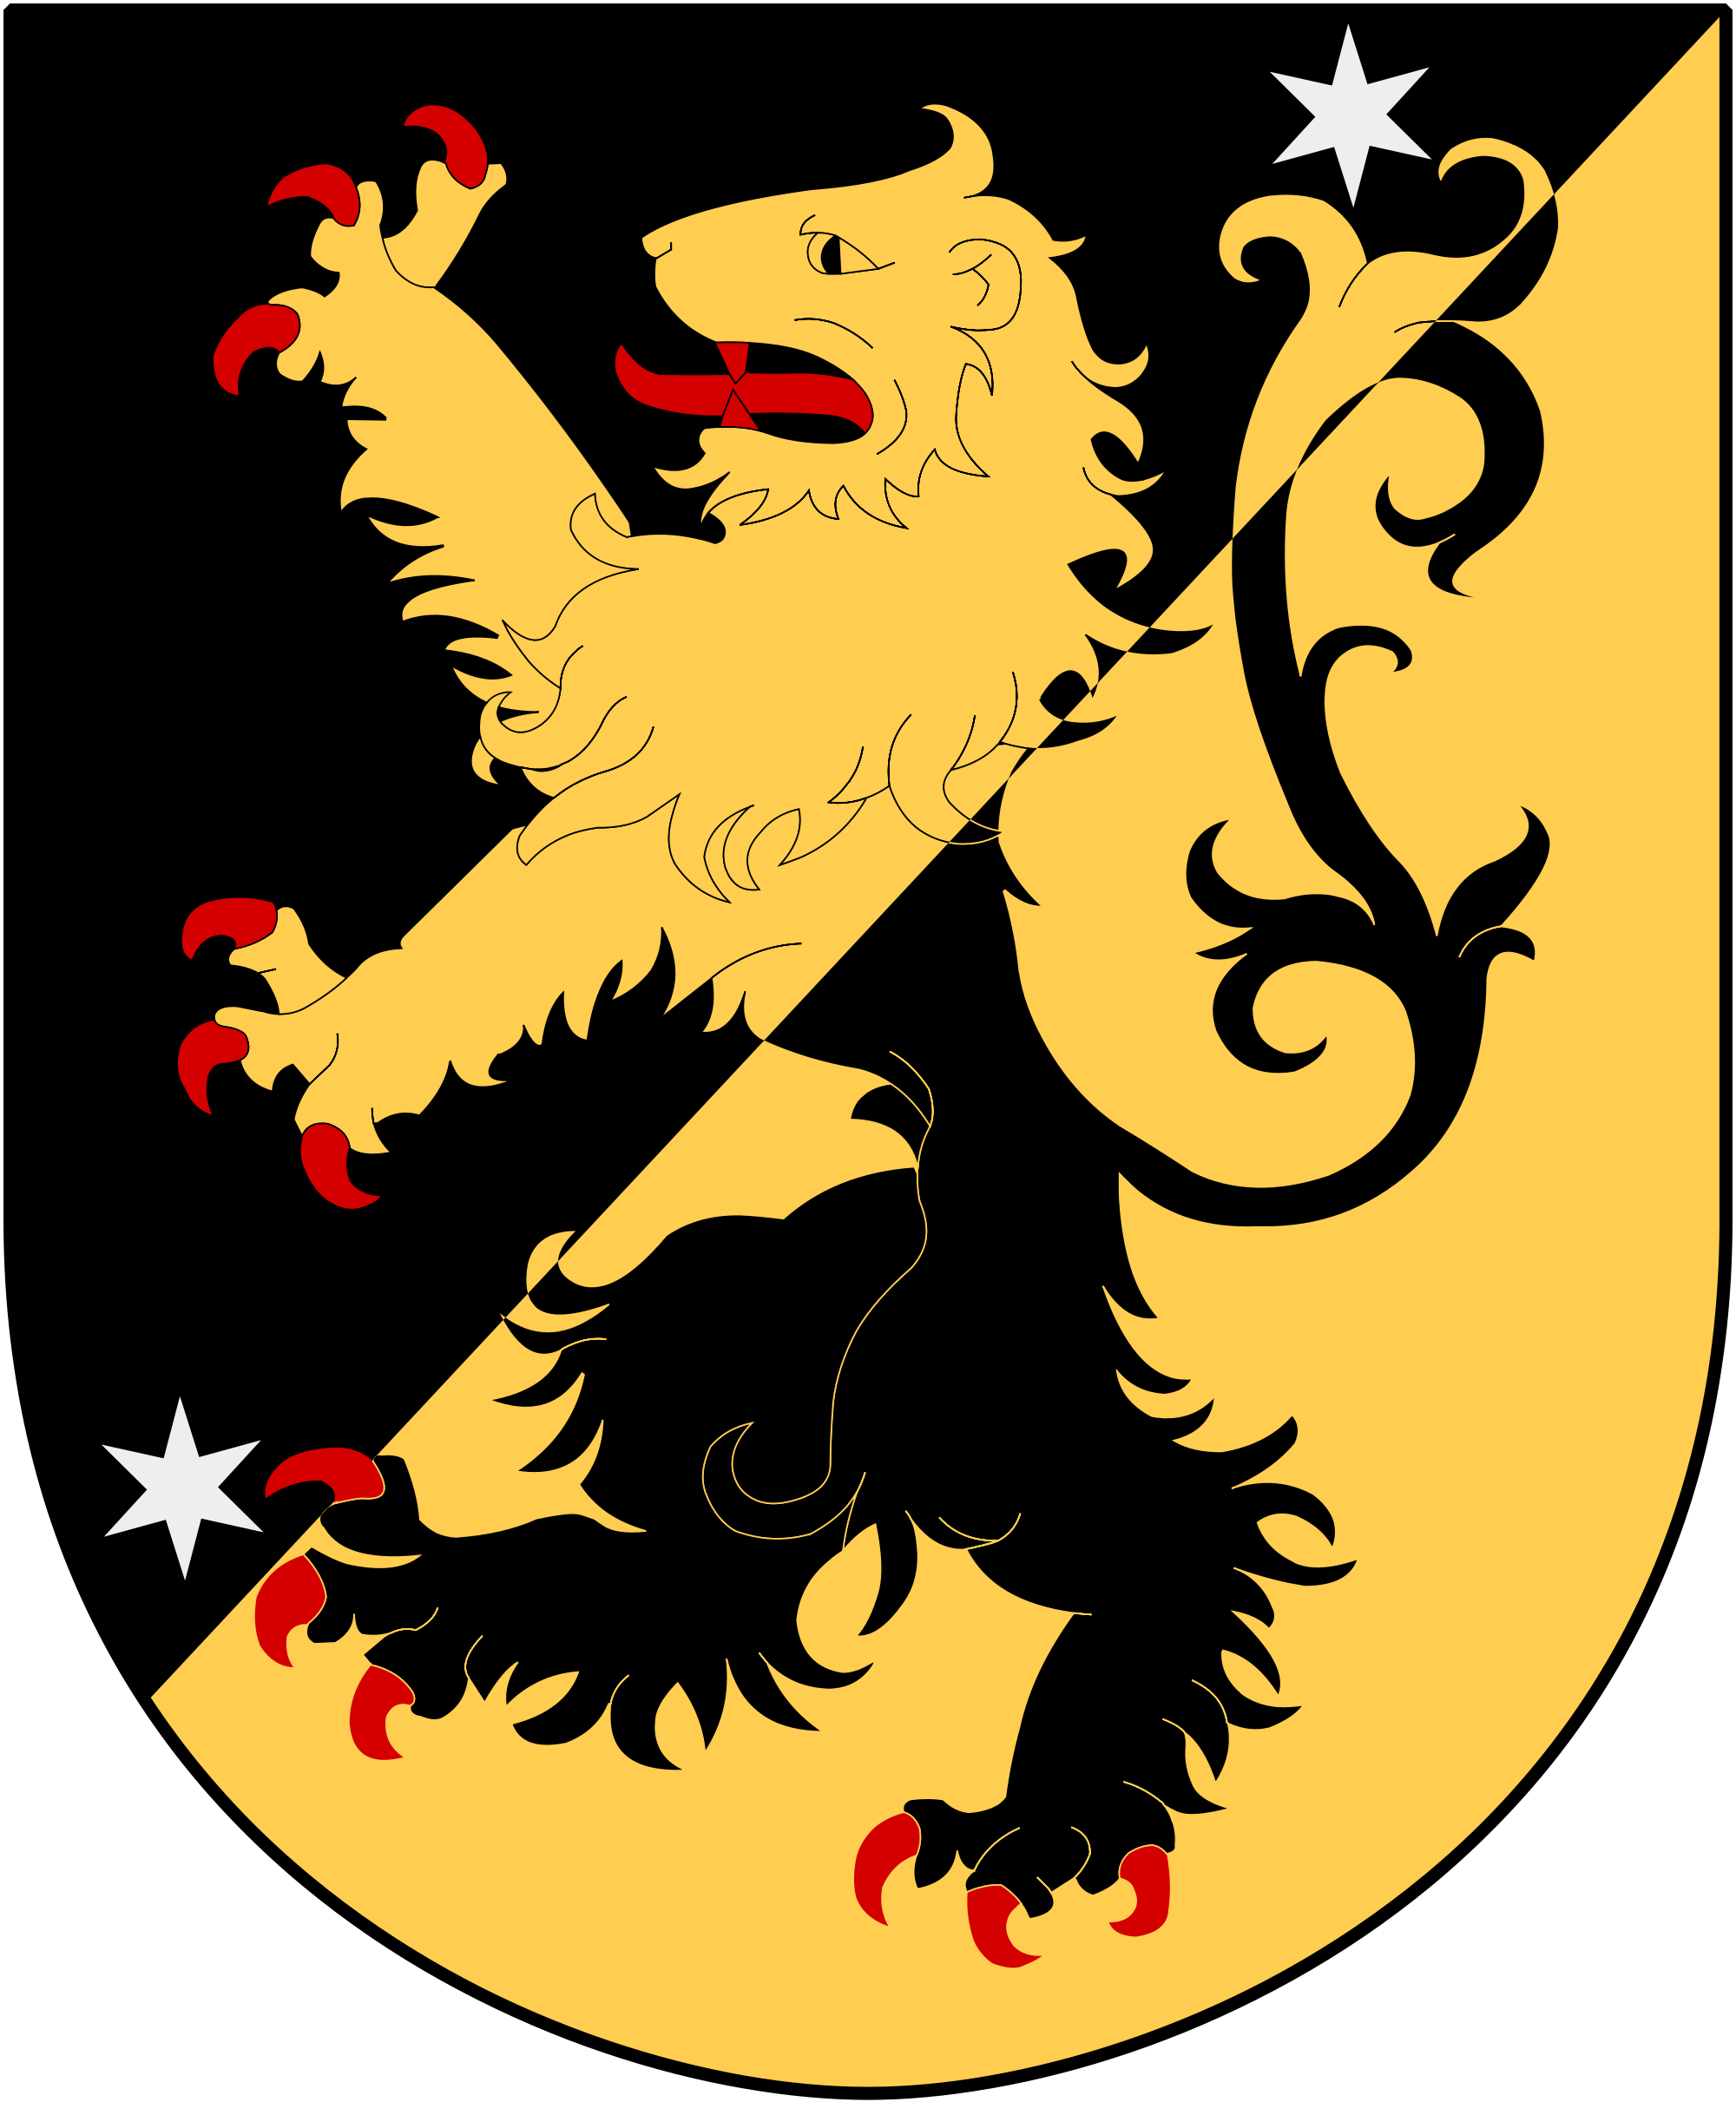 Coat Of Arms Of The Province Of Vastergotland Sweden Coat Of Arms Medieval Paintings Heraldry